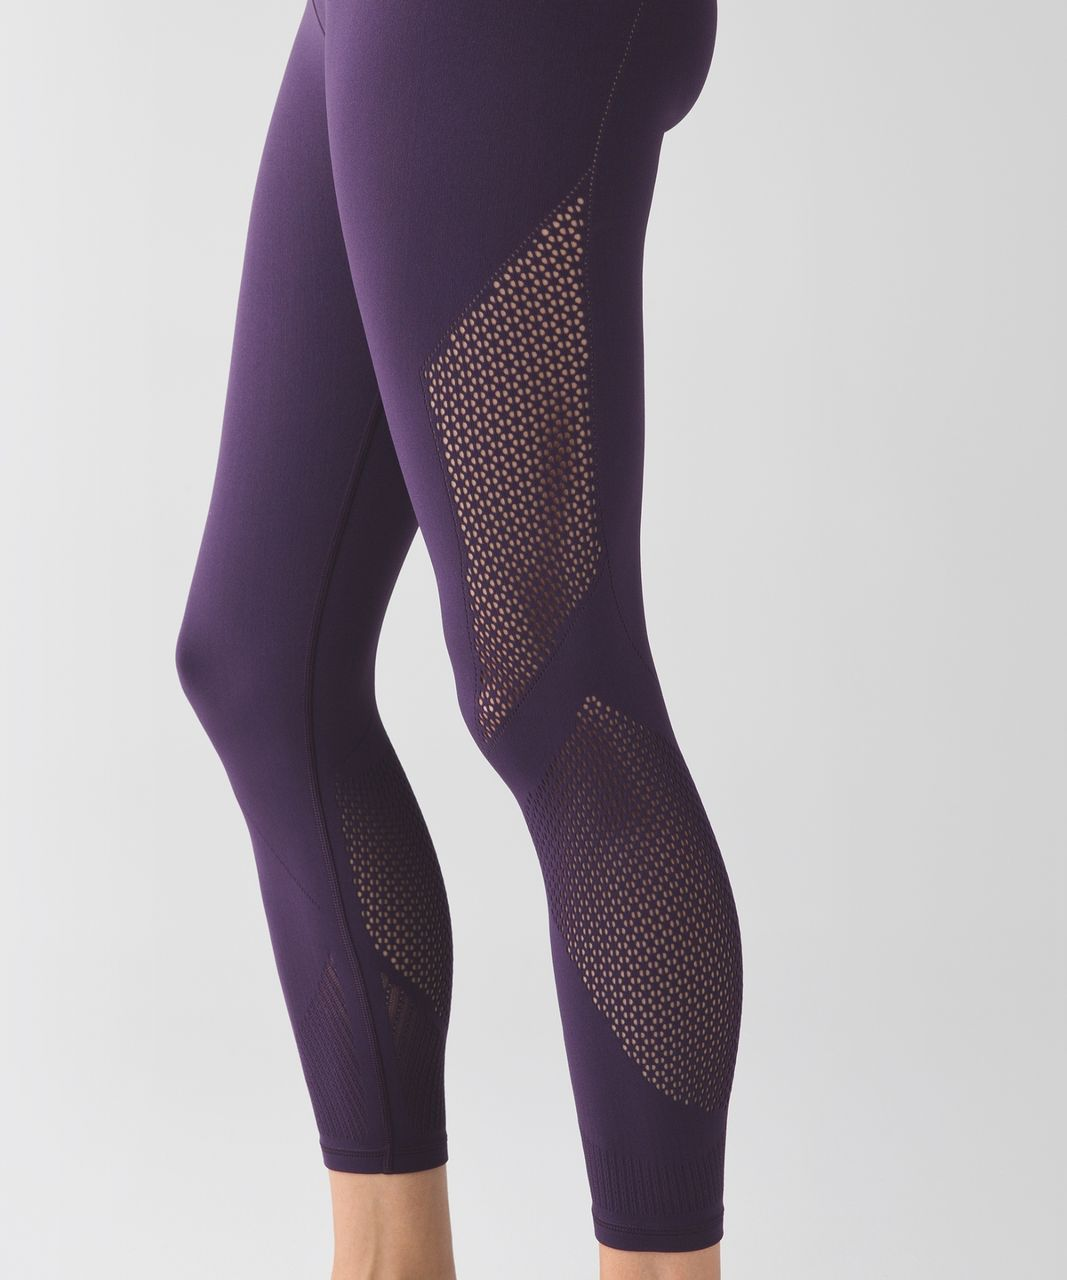 Lululemon Enlighten Tight Contour - Deep Zinfandel